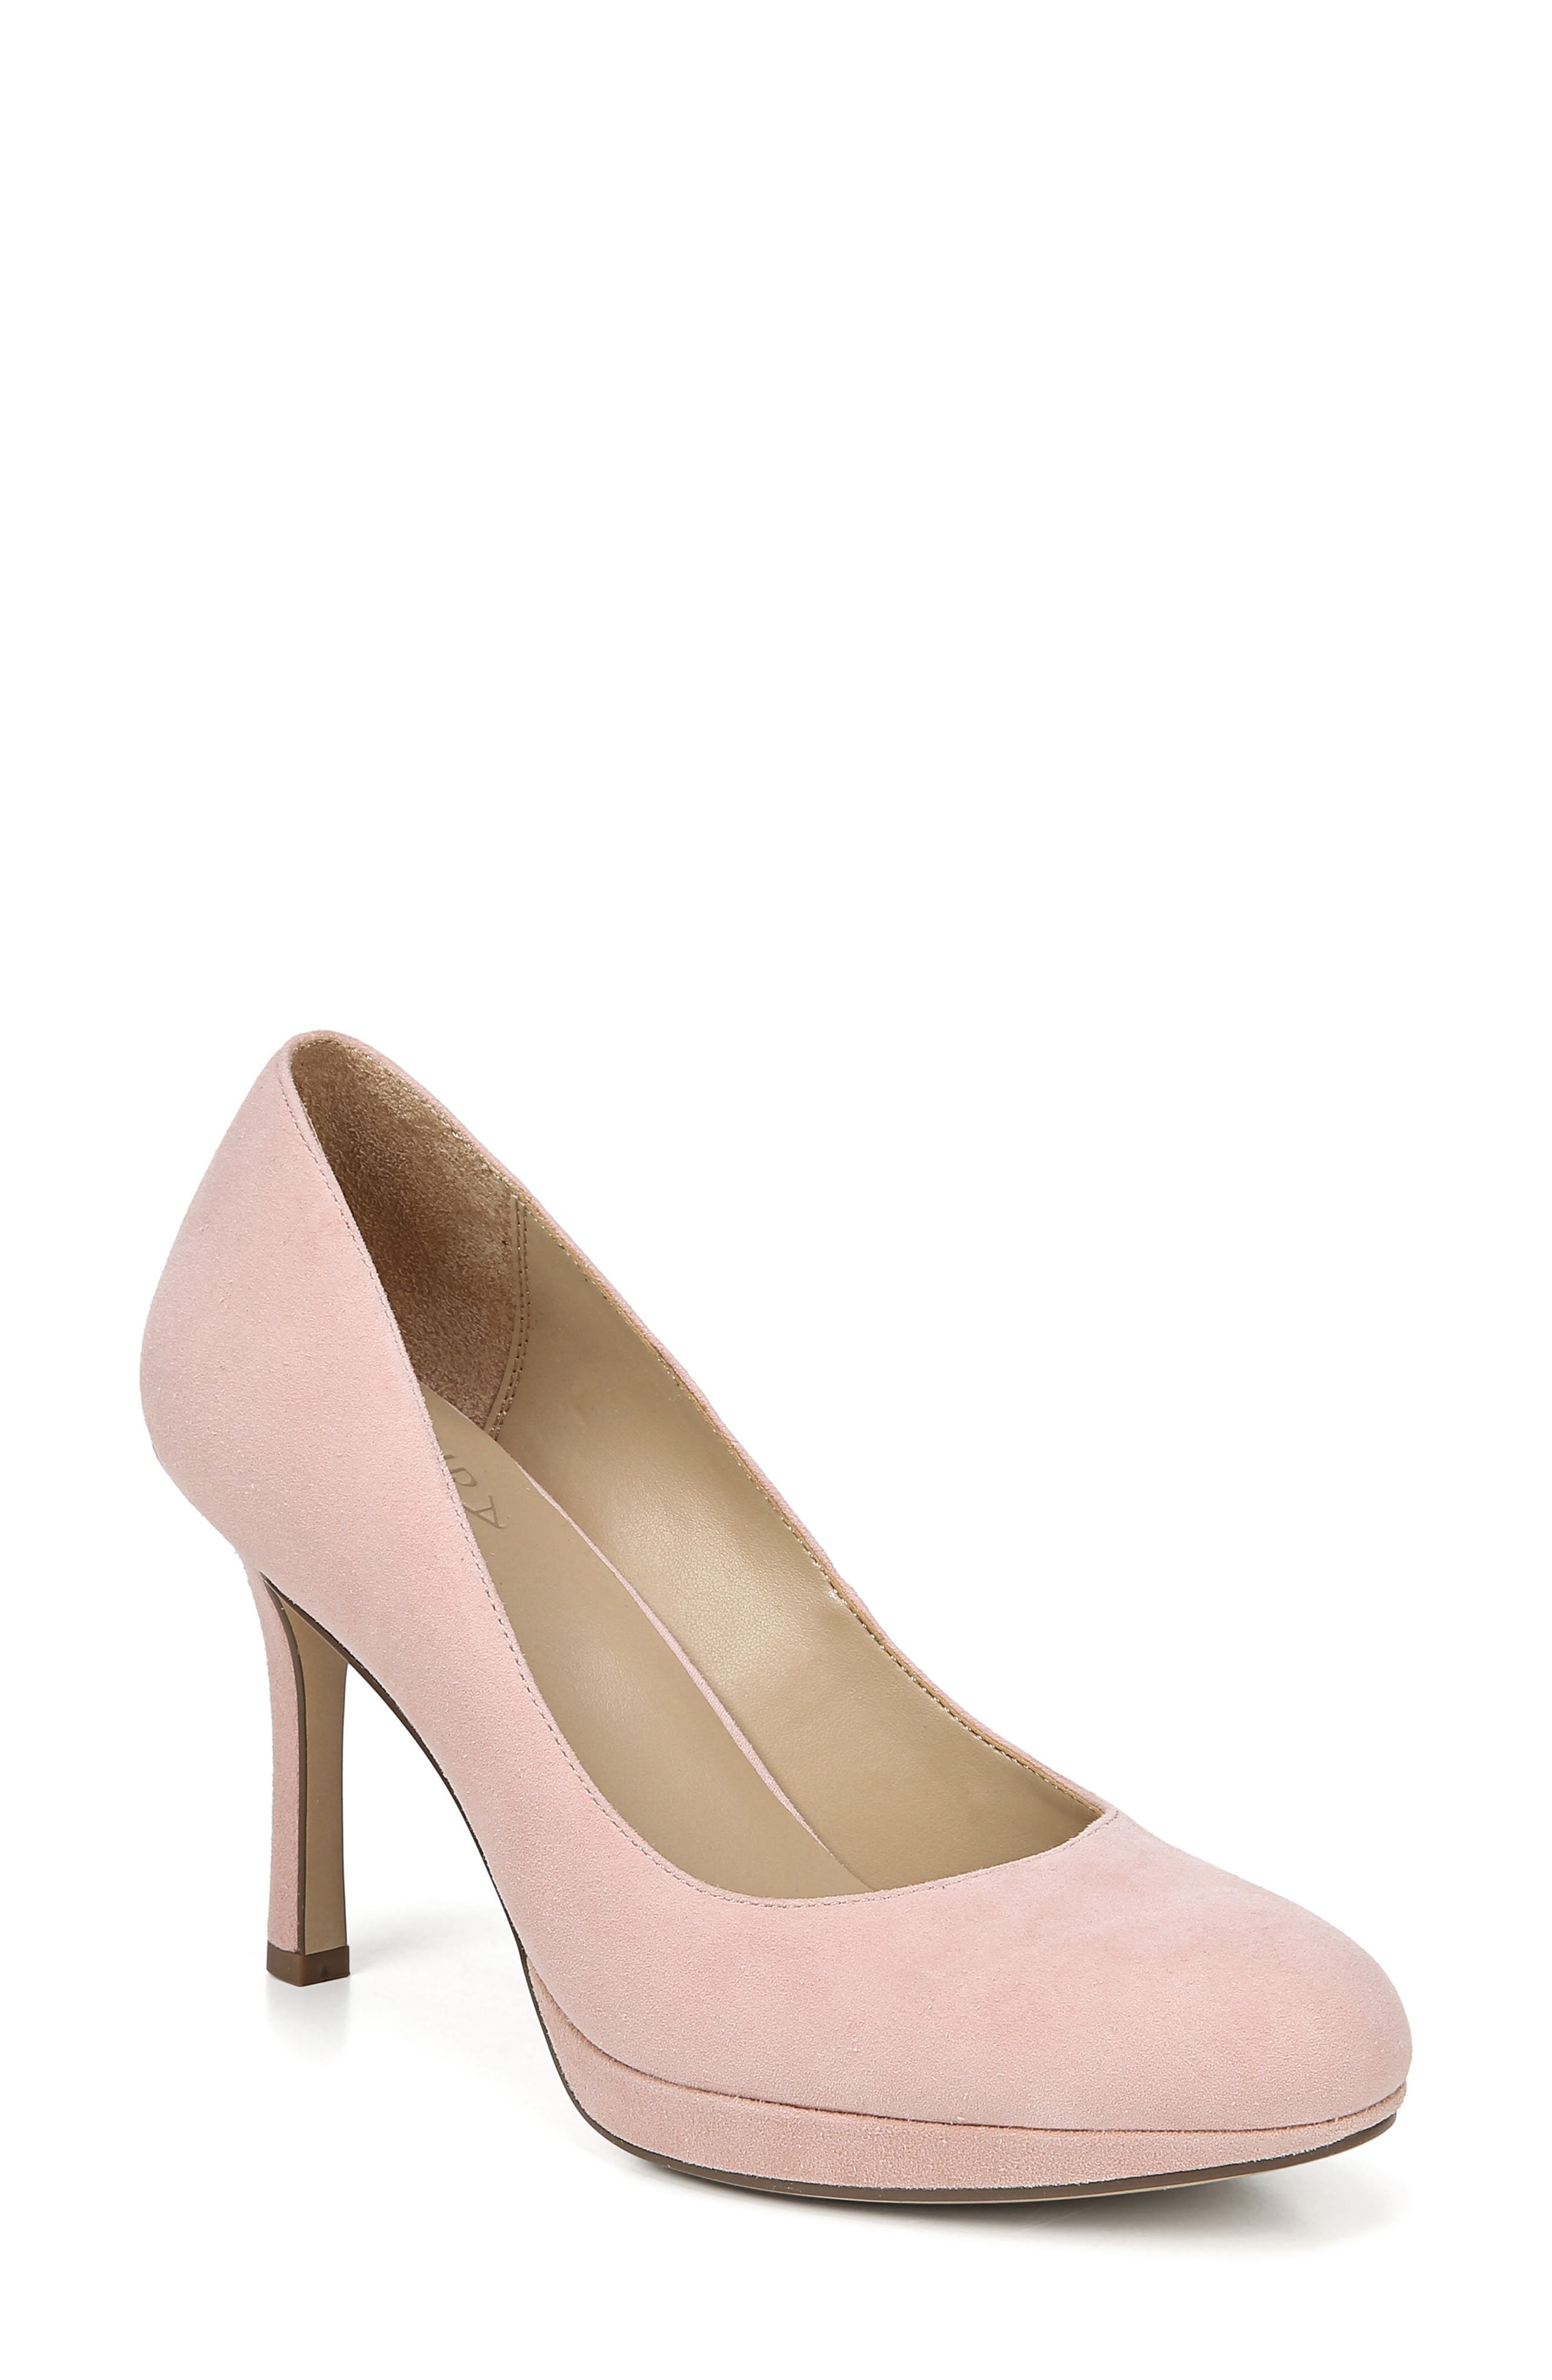 Naturalizer Celina Almond Toe Pump- Pink